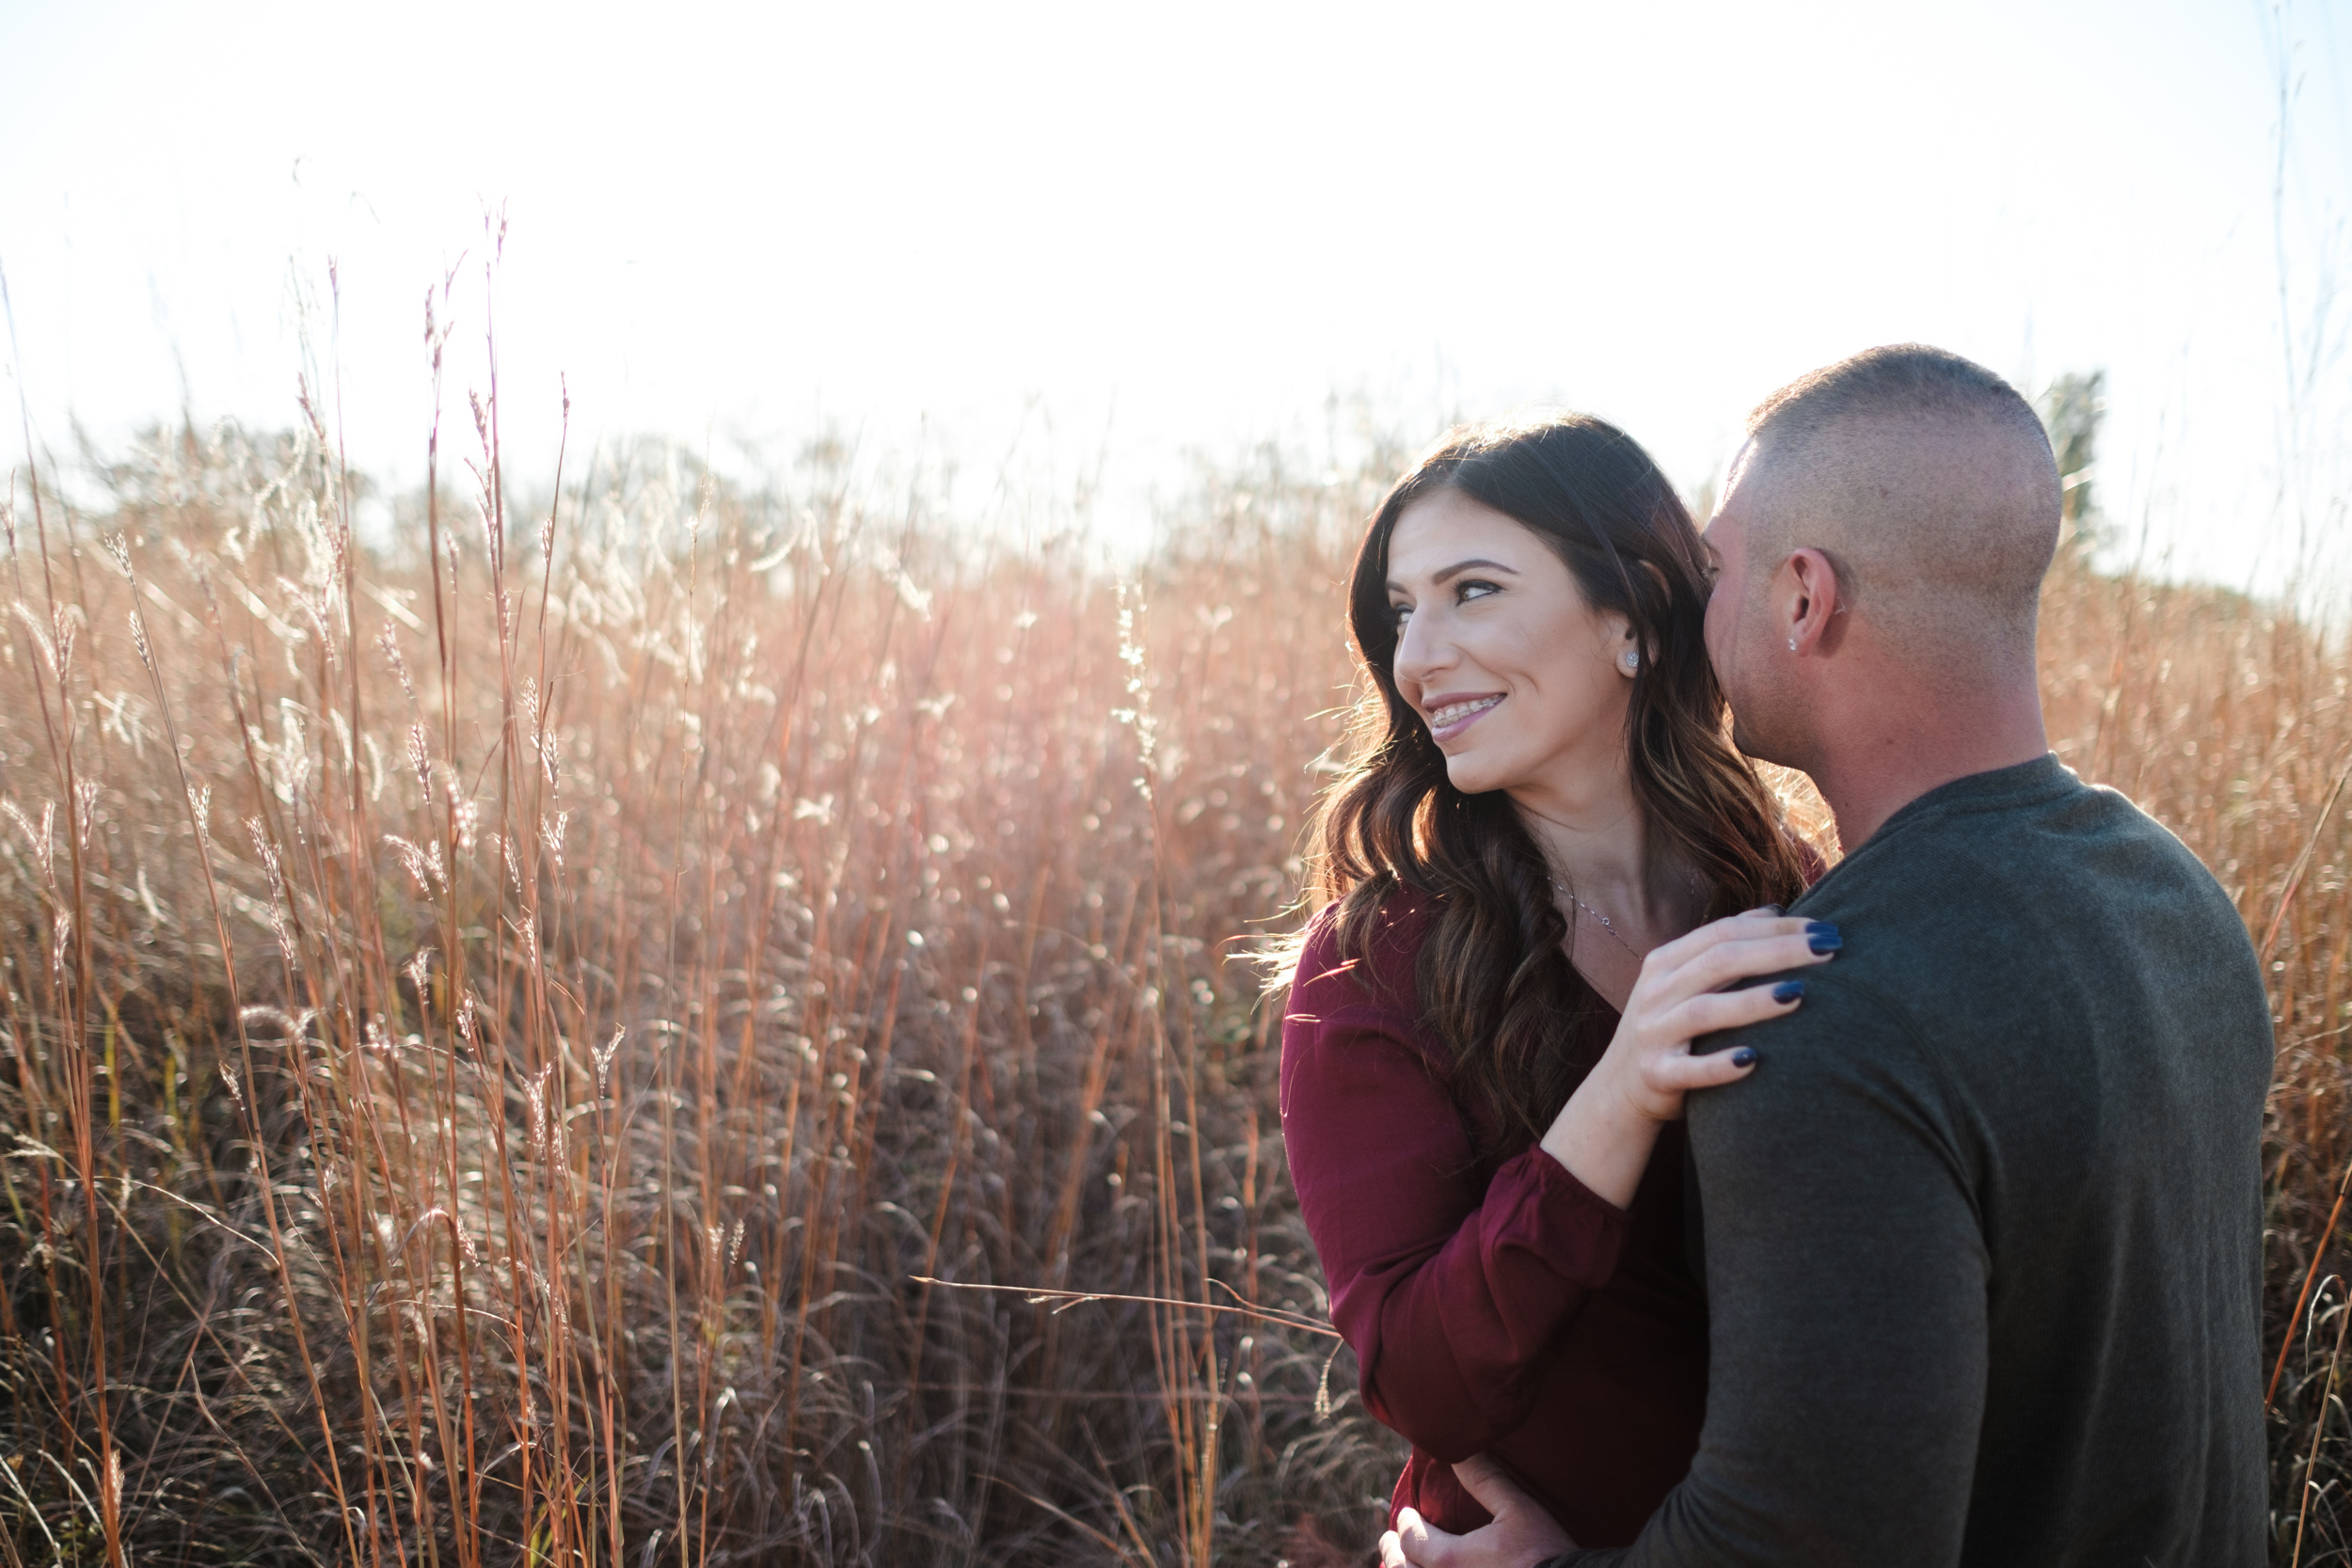 Bride with beautiful long dark hair looks away from groom with tall grass field behind them and the sun setting during golden hour in Rockford, Illinois.